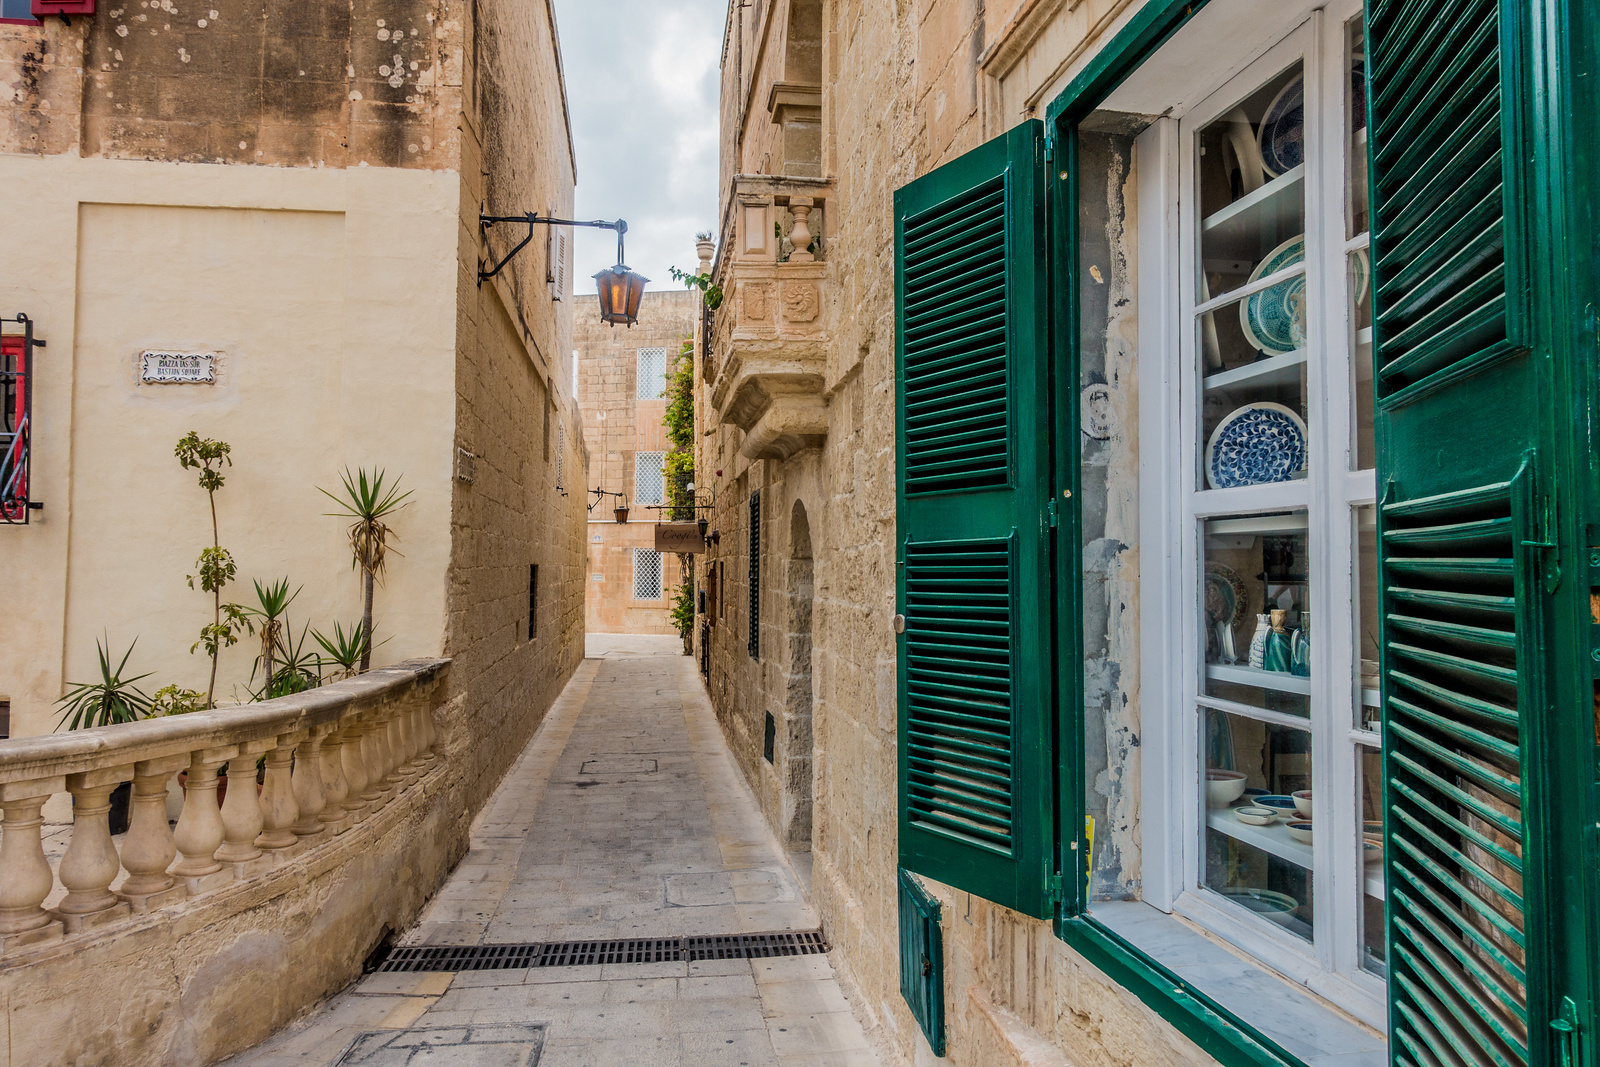 3 days in Malta - Mdina